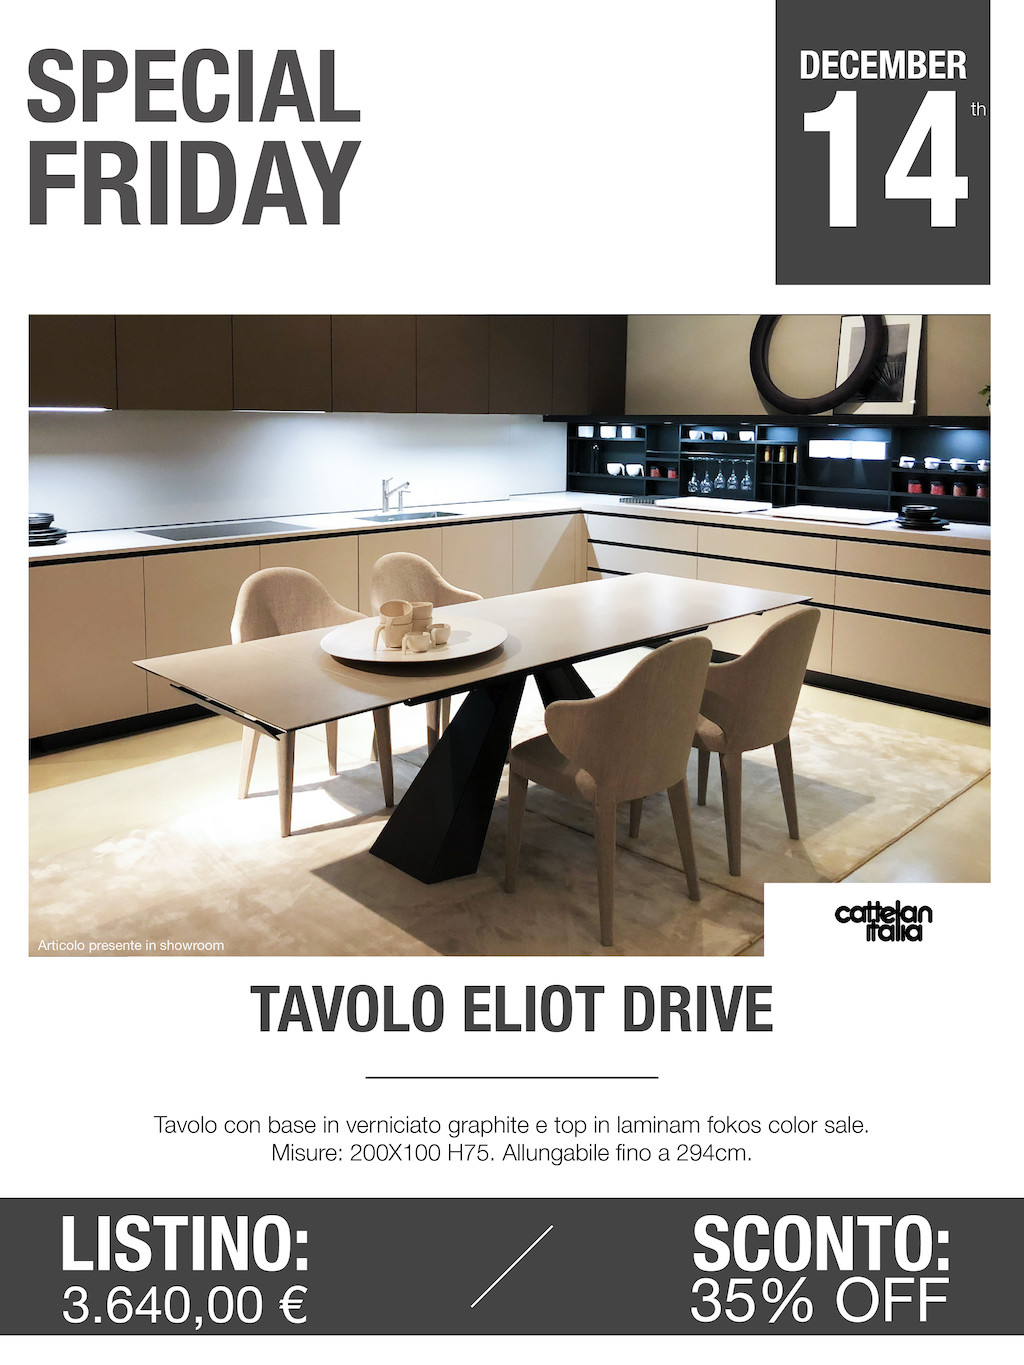 tavolo eliot drive Special Friday